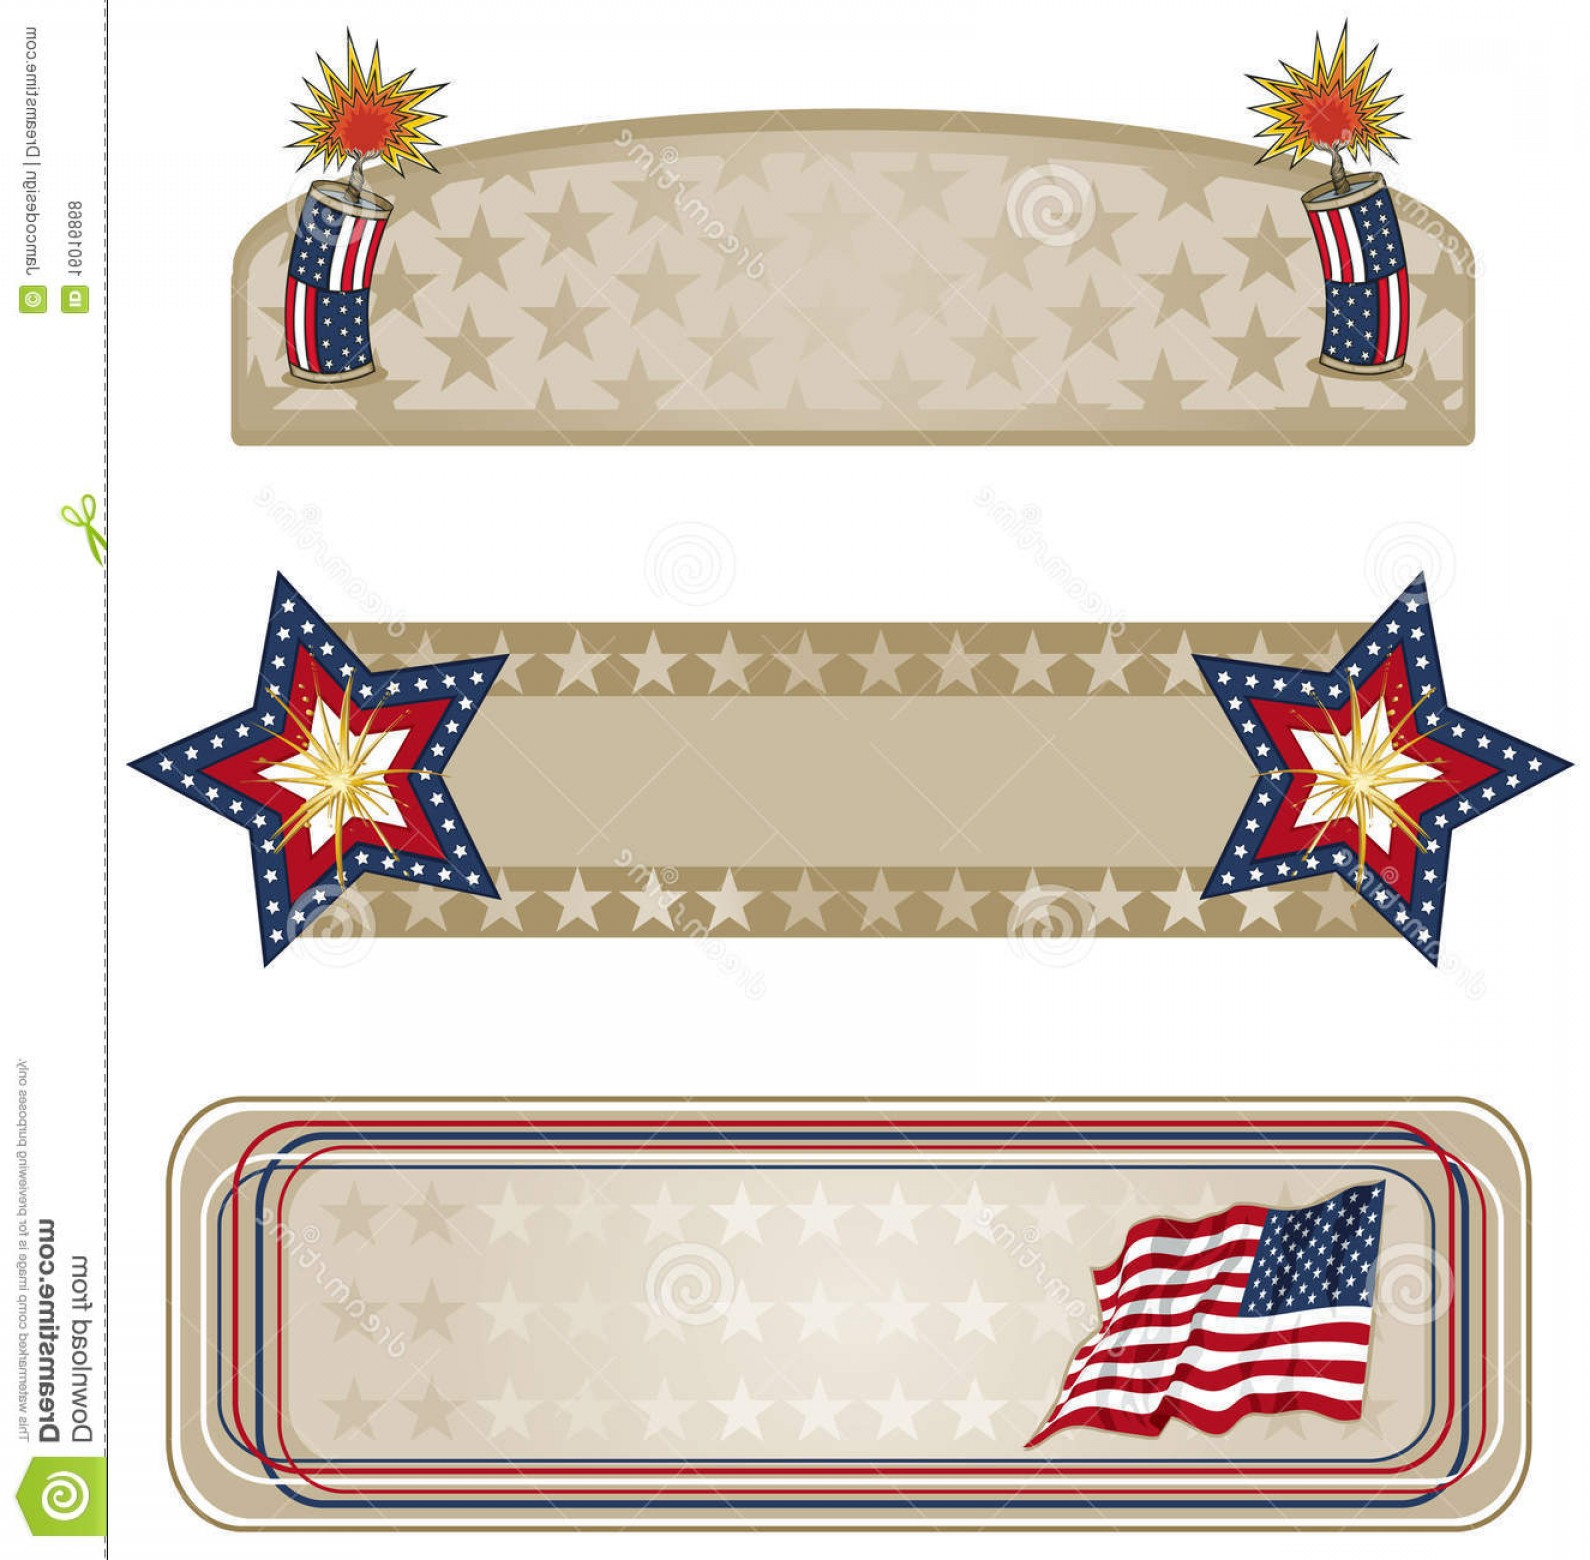 Americana Vector Art: Royalty Free Stock Photos Americana Banners More Image